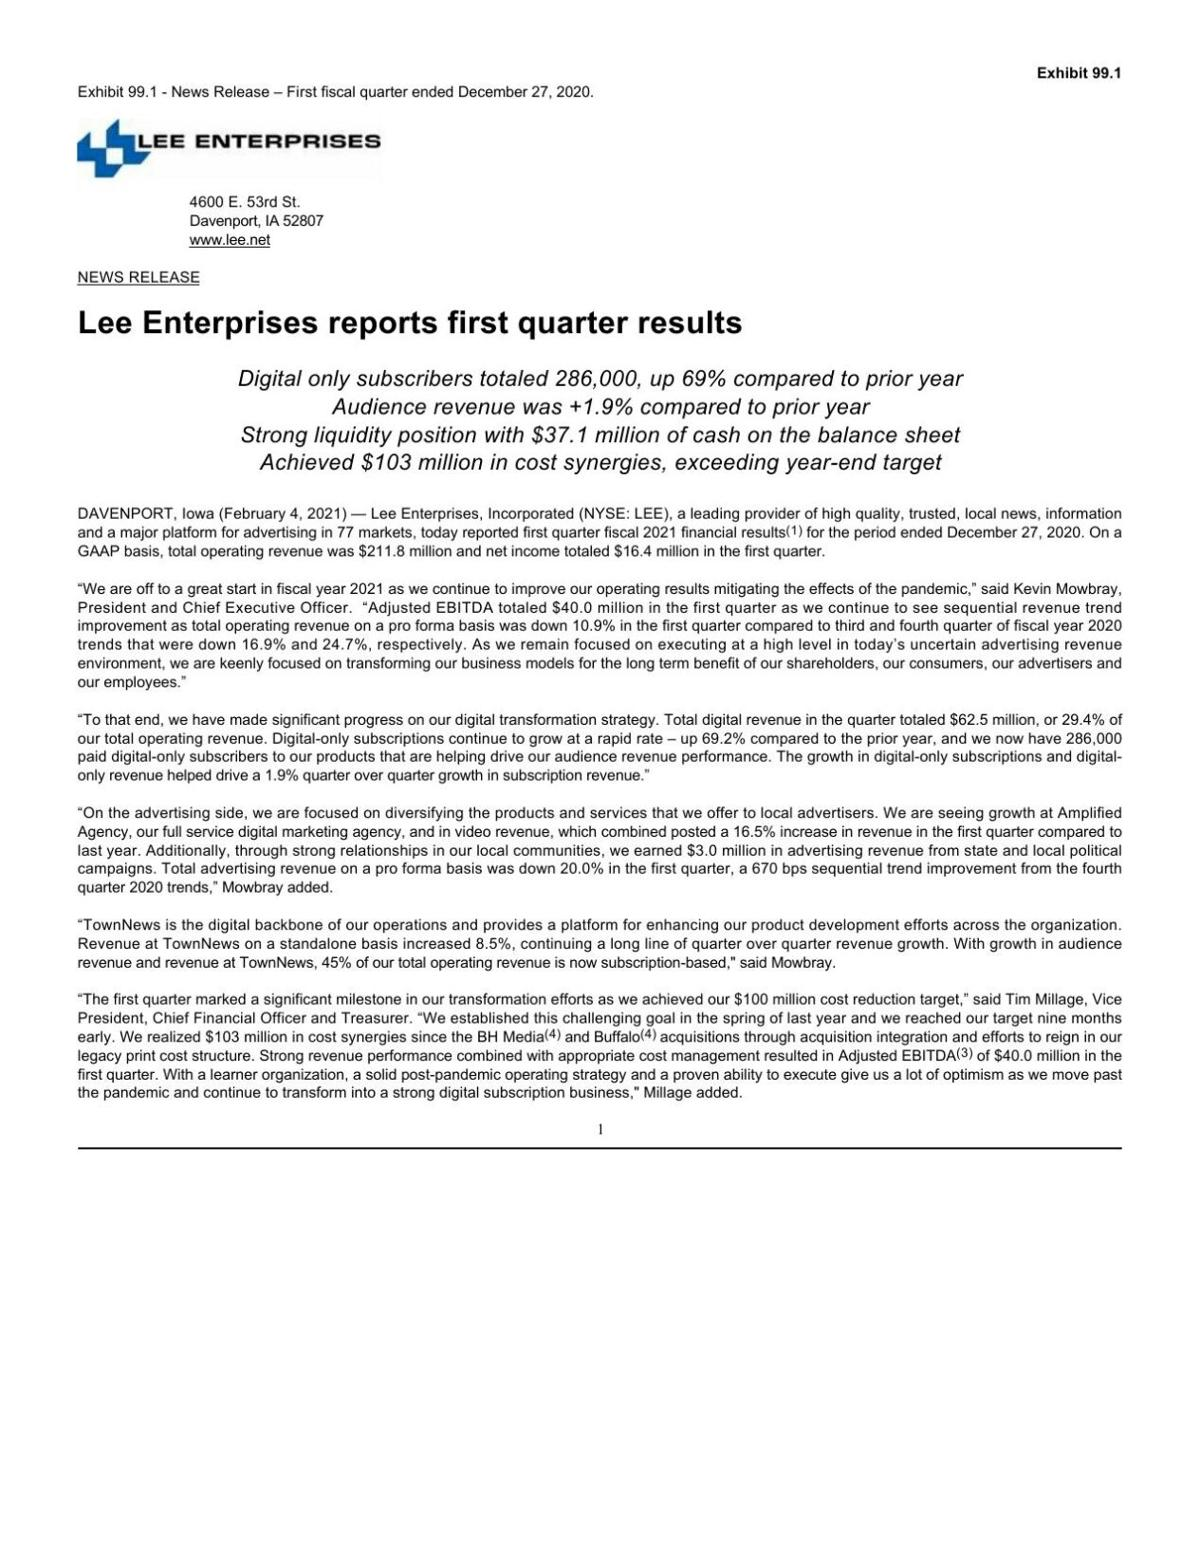 Lee Enterprises reports first quarter results